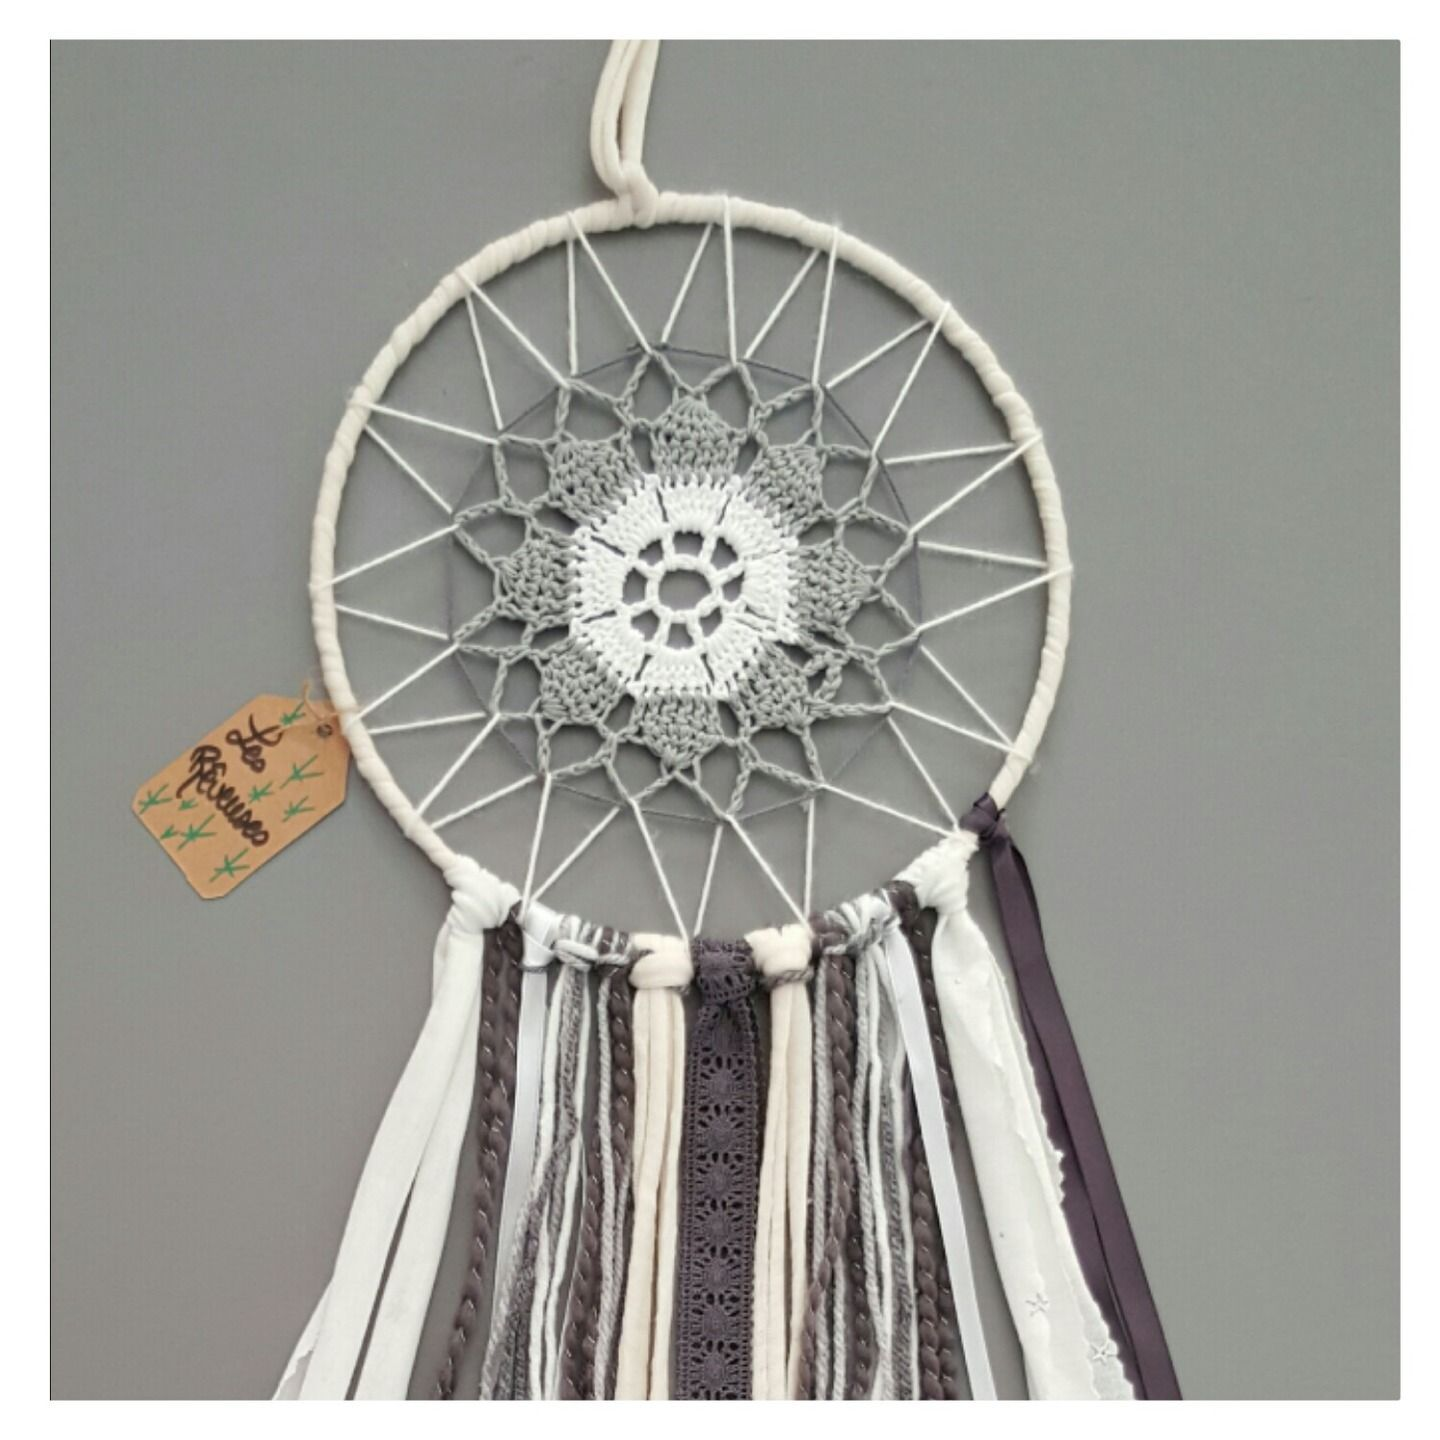 Attrape r ve personnalisable gris blanc crochet dream catcher pinterest dream catchers and - Attrape reve crochet ...